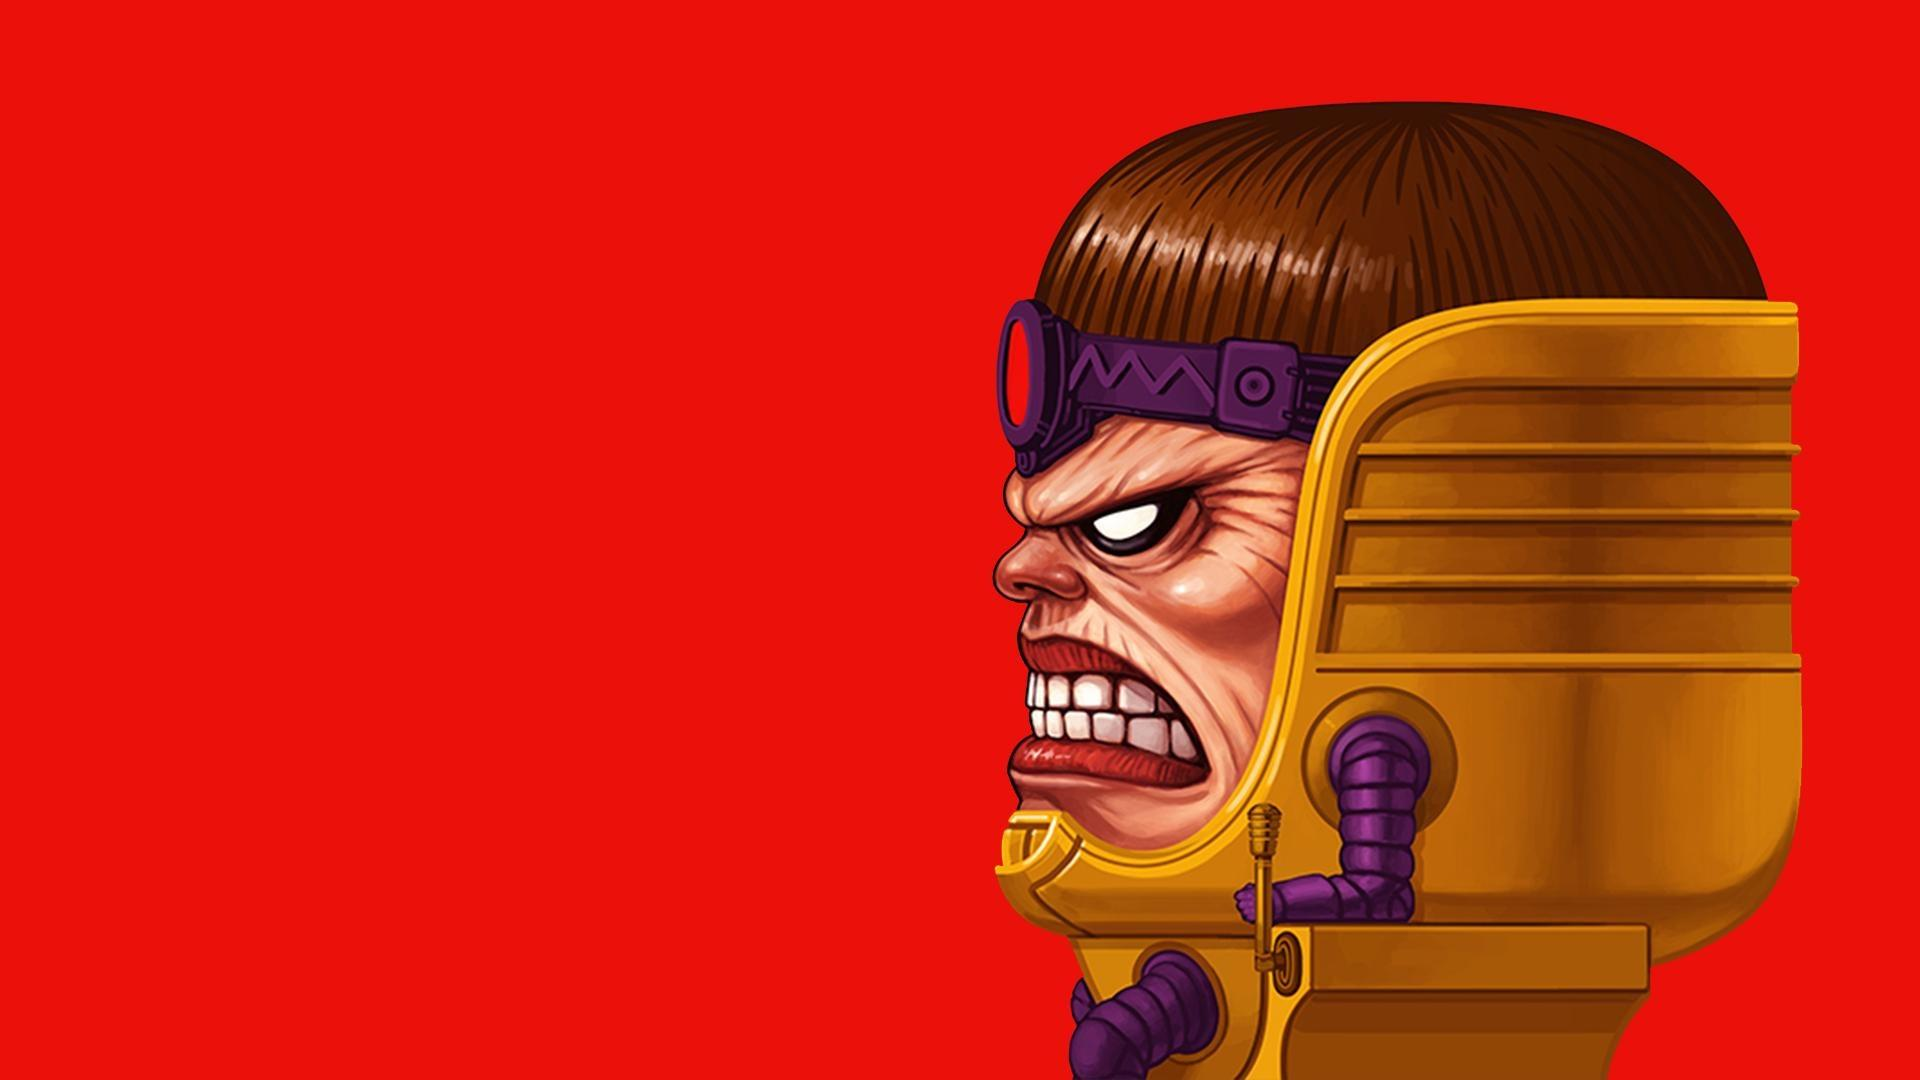 MODOK Comics wallpapers HD quality